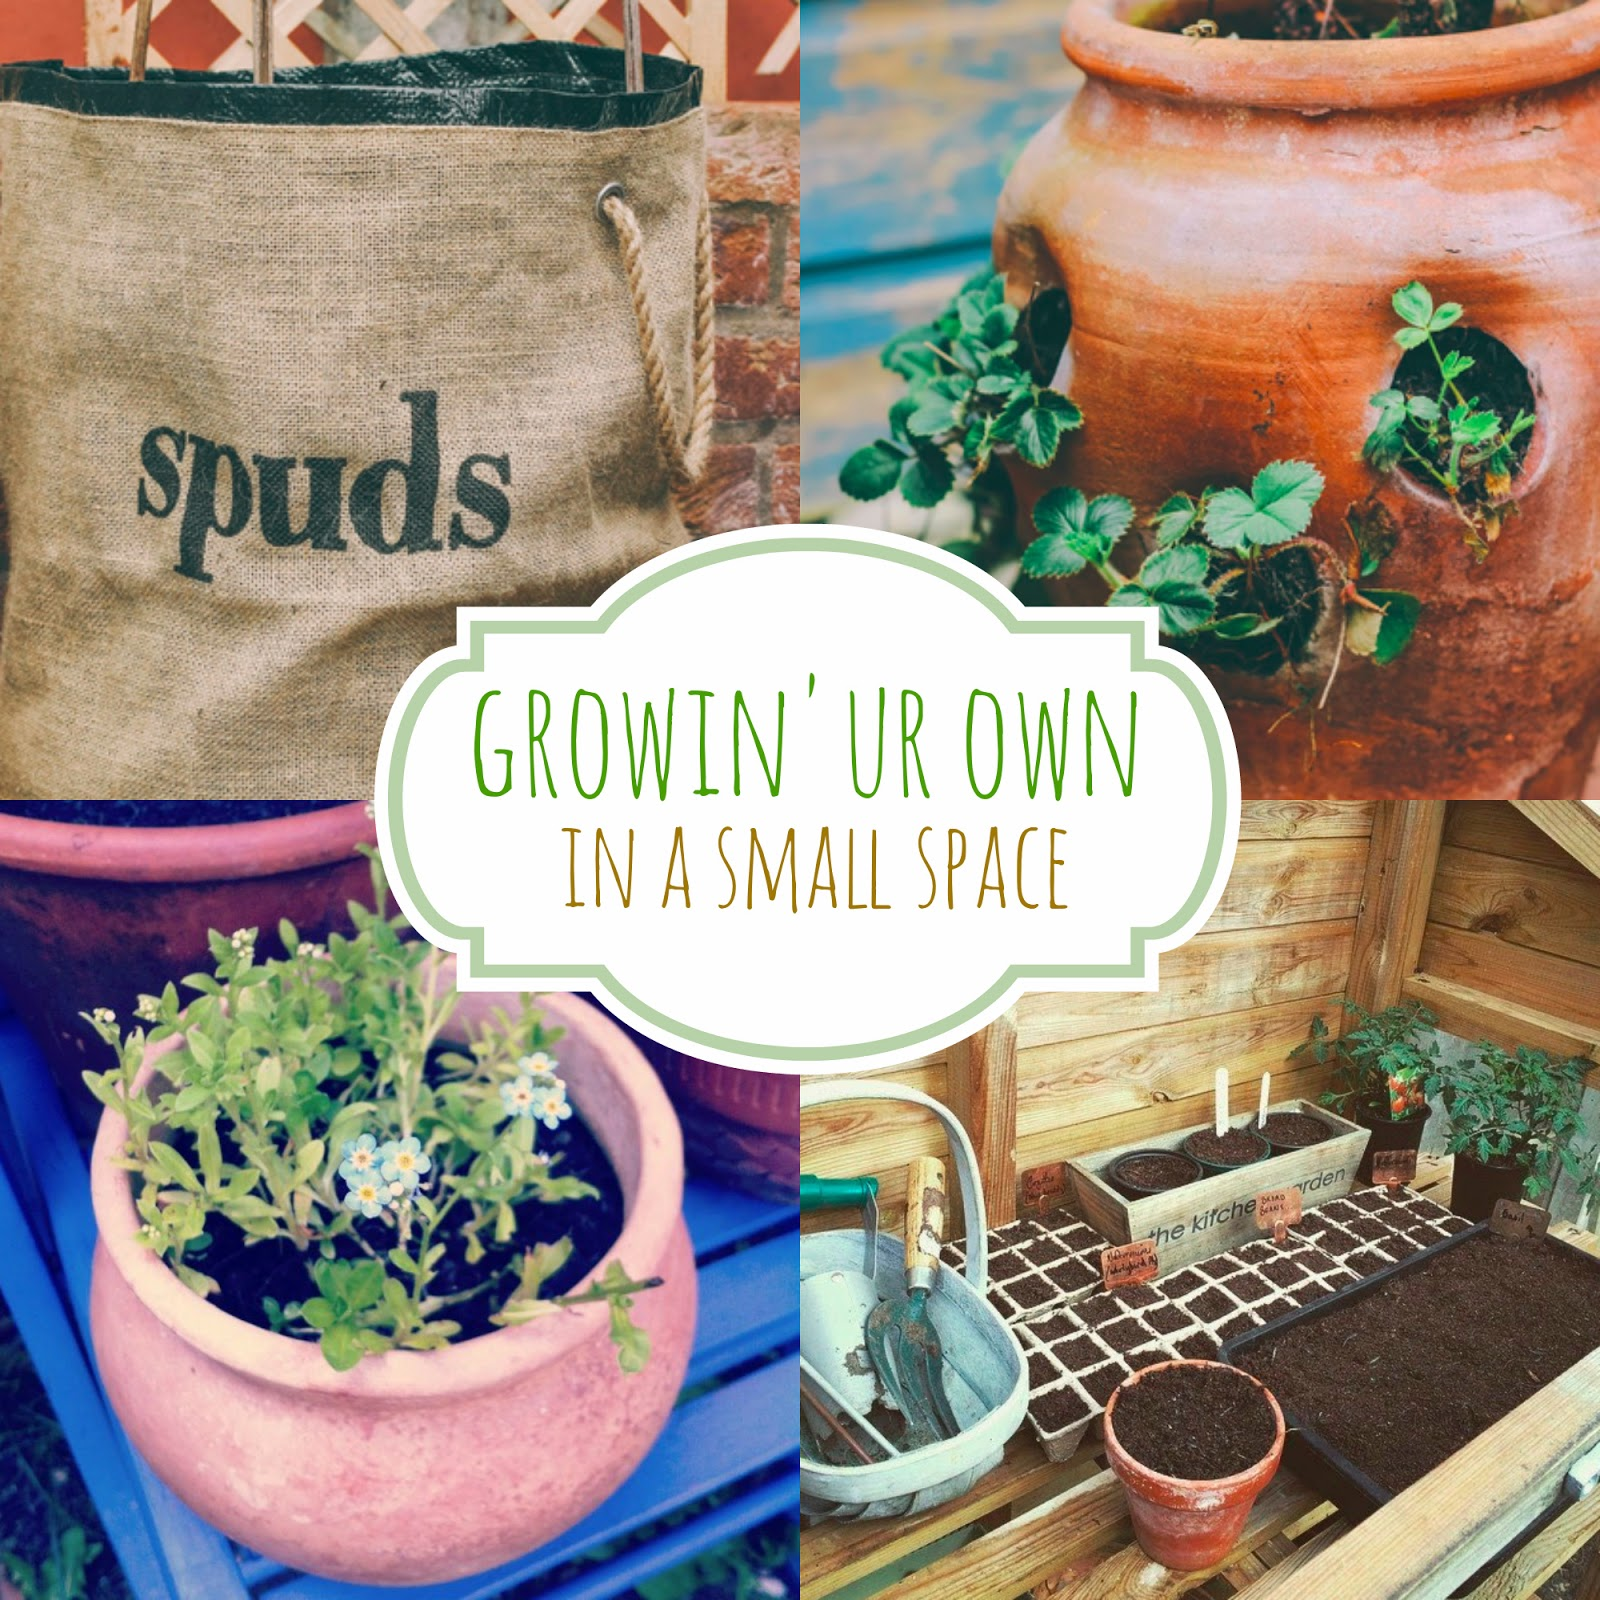 Growing your own, in a small space